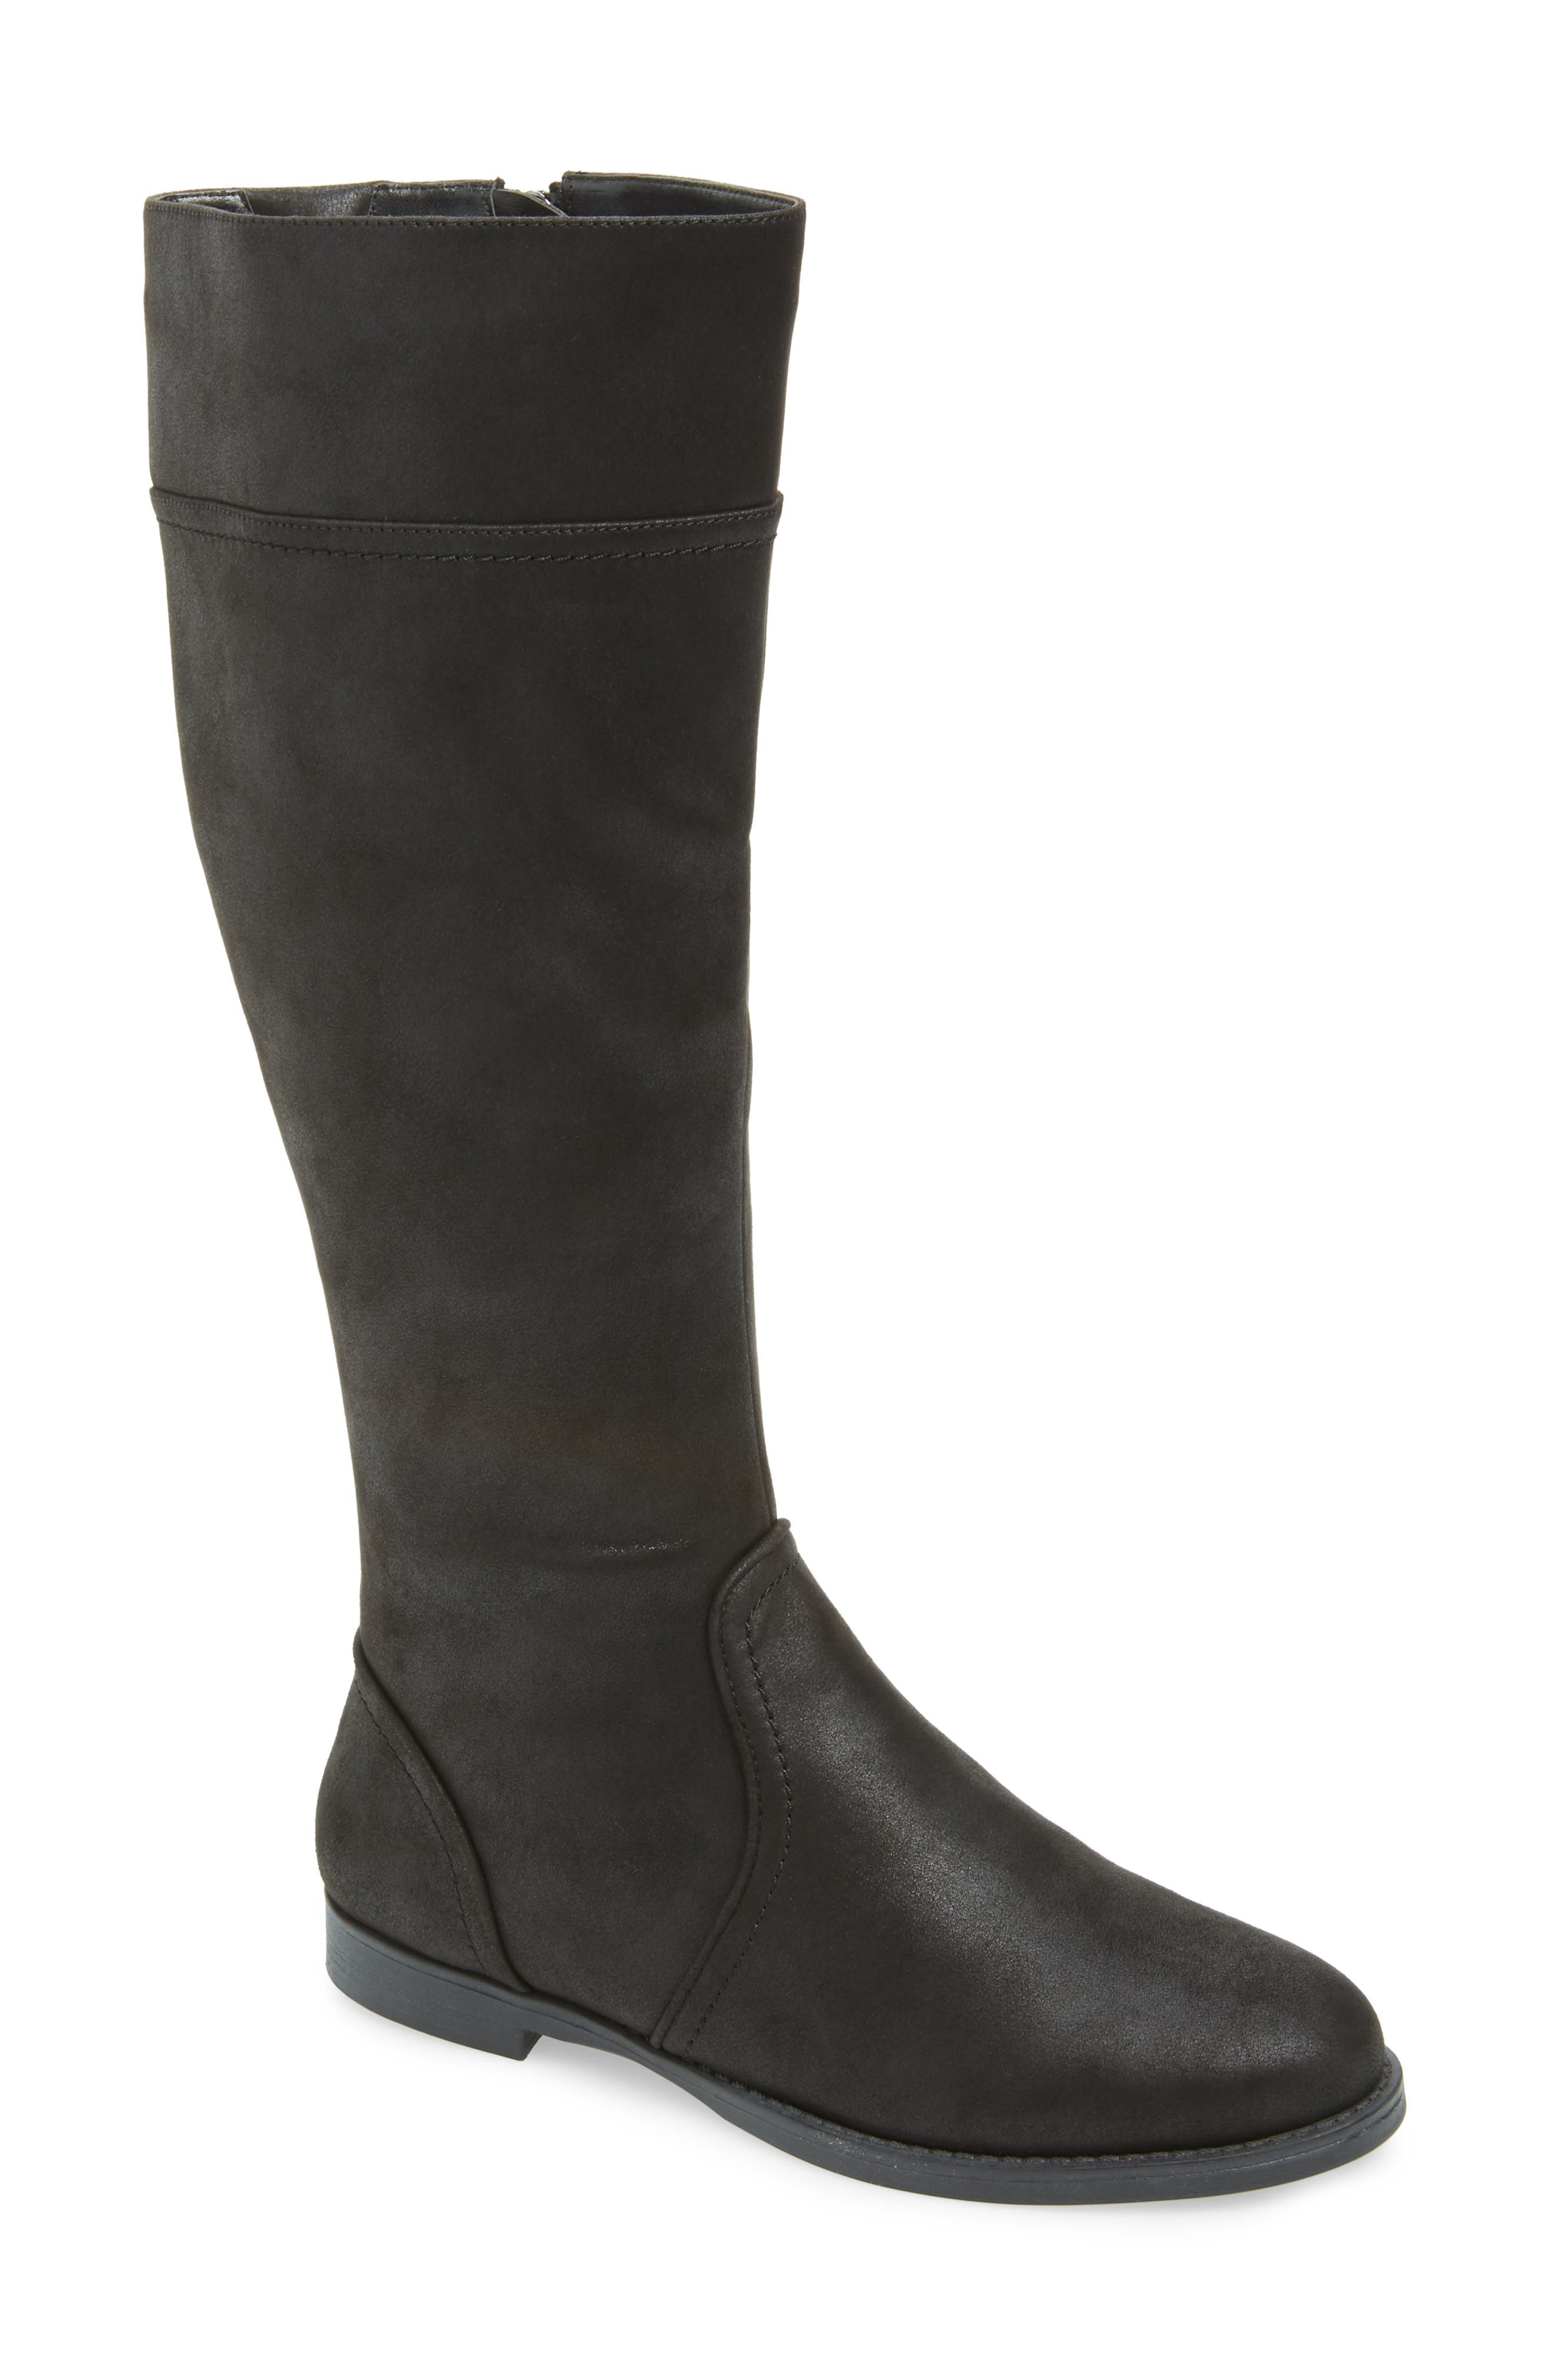 Bella Vita Rebecca Ii Knee High Boot, Black